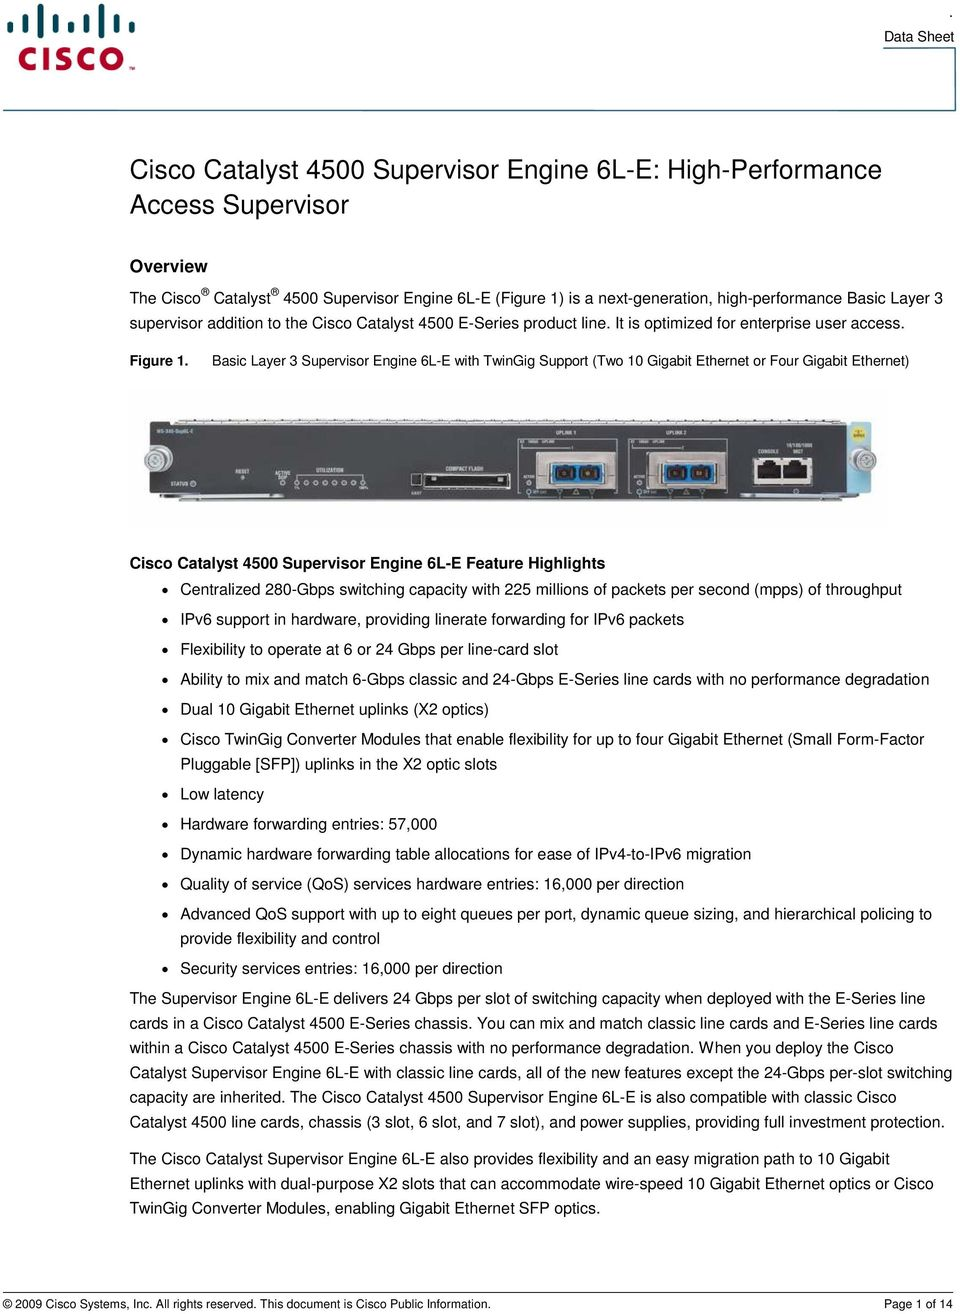 Basic Layer 3 Supervisor Engine 6L-E with TwinGig Support (Two 10 Gigabit Ethernet or Four Gigabit Ethernet) Cisco Catalyst 4500 Supervisor Engine 6L-E Feature Highlights Centralized 280-Gbps